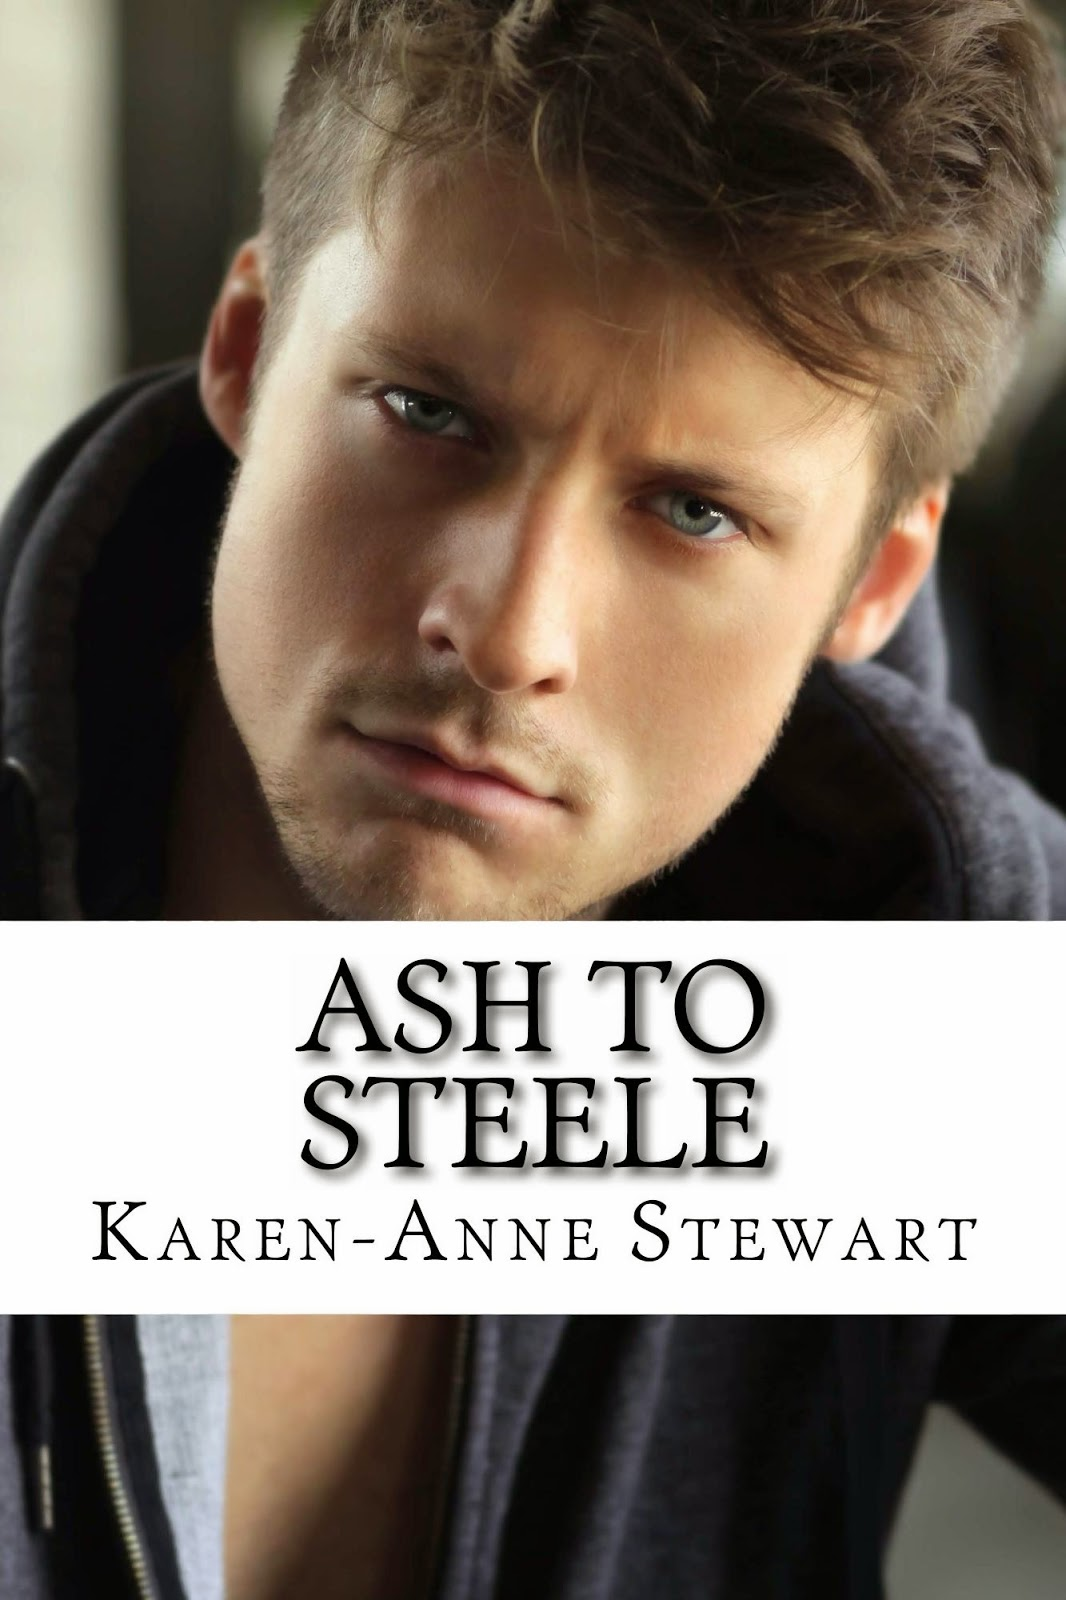 https://www.goodreads.com/book/show/20745033-ash-to-steele?from_search=true